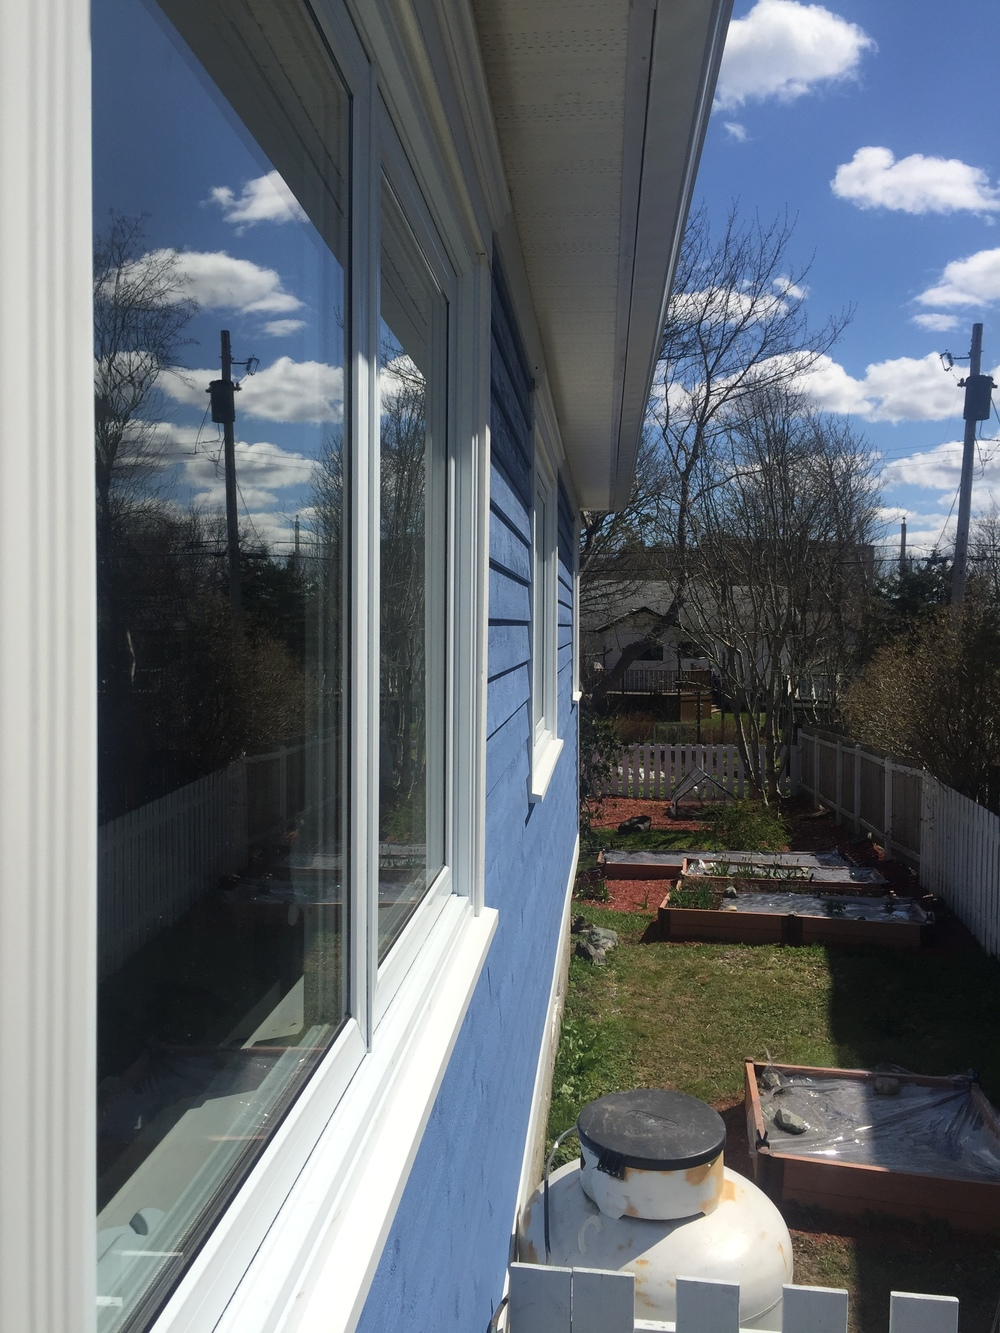 New windows and siding will increase efficiency of home.